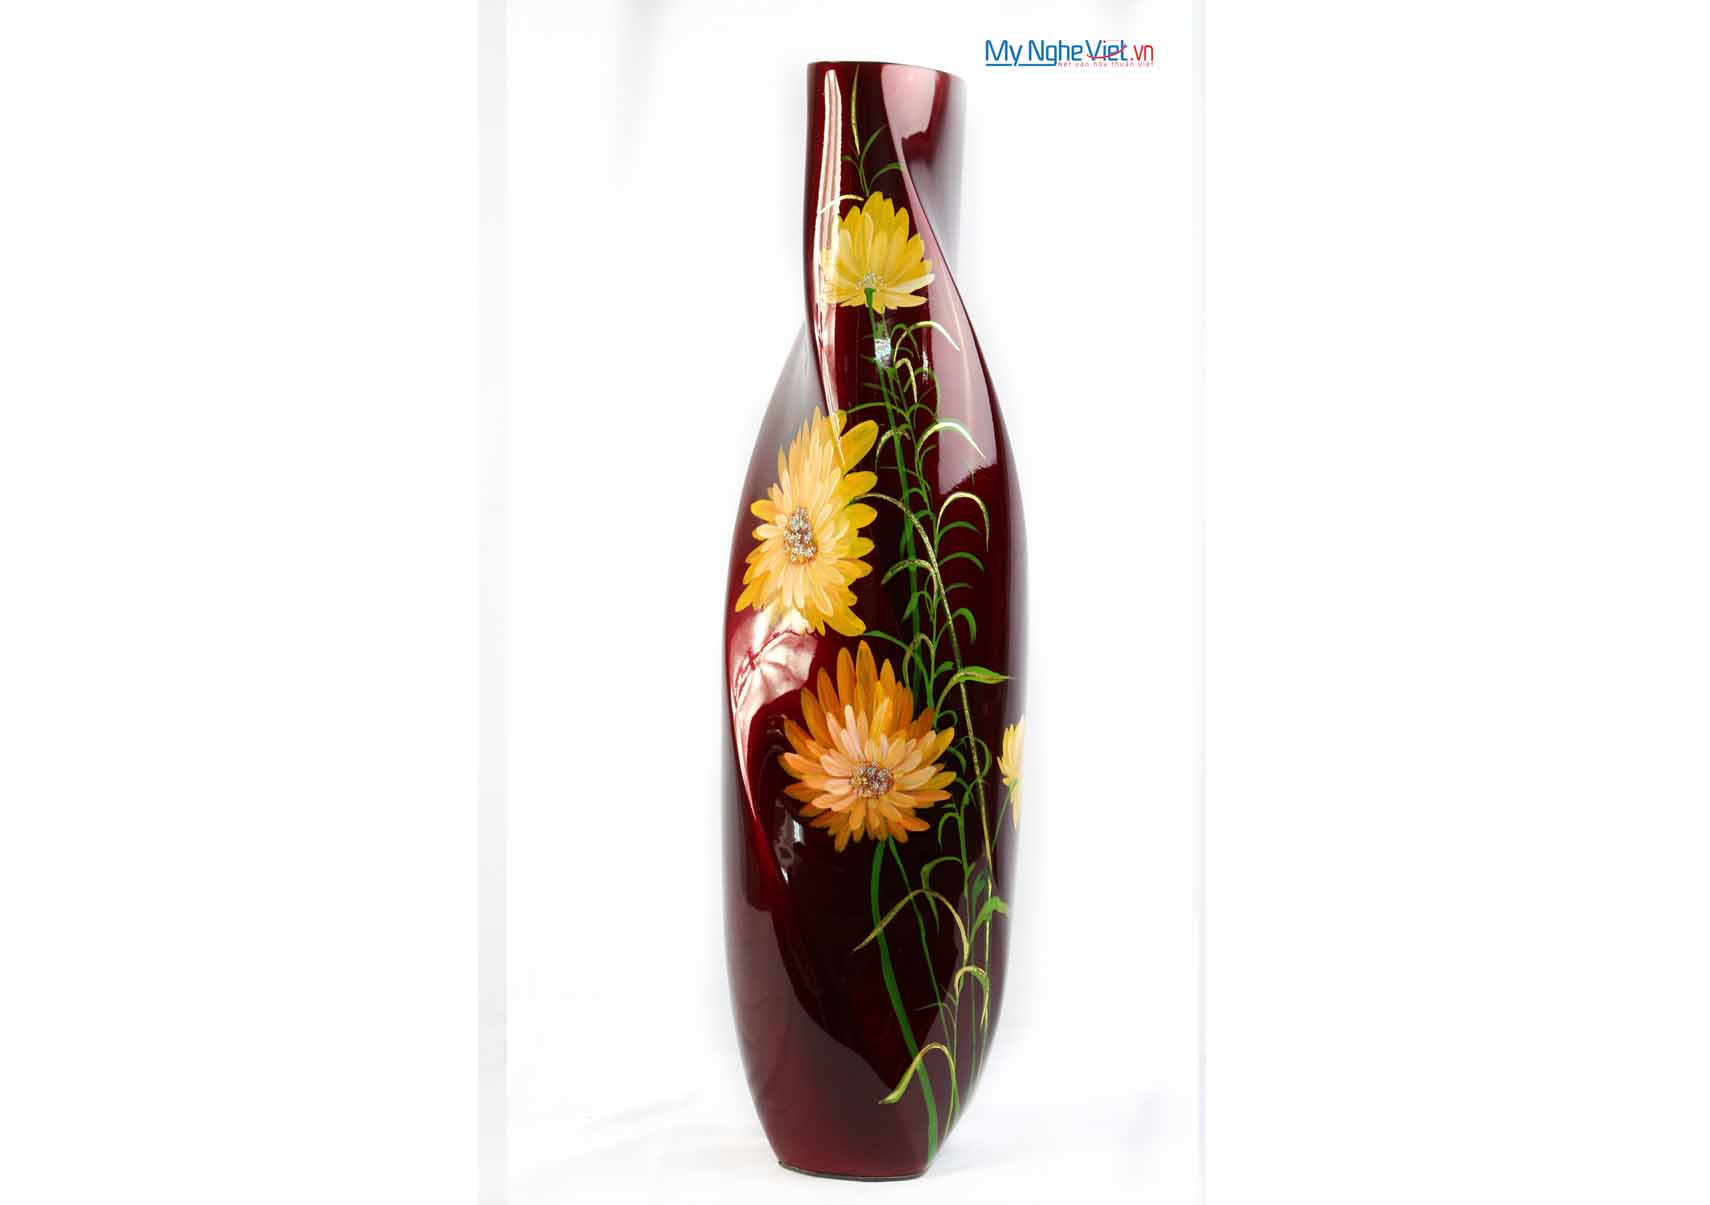 Lacquer vase MNV-LHSM04